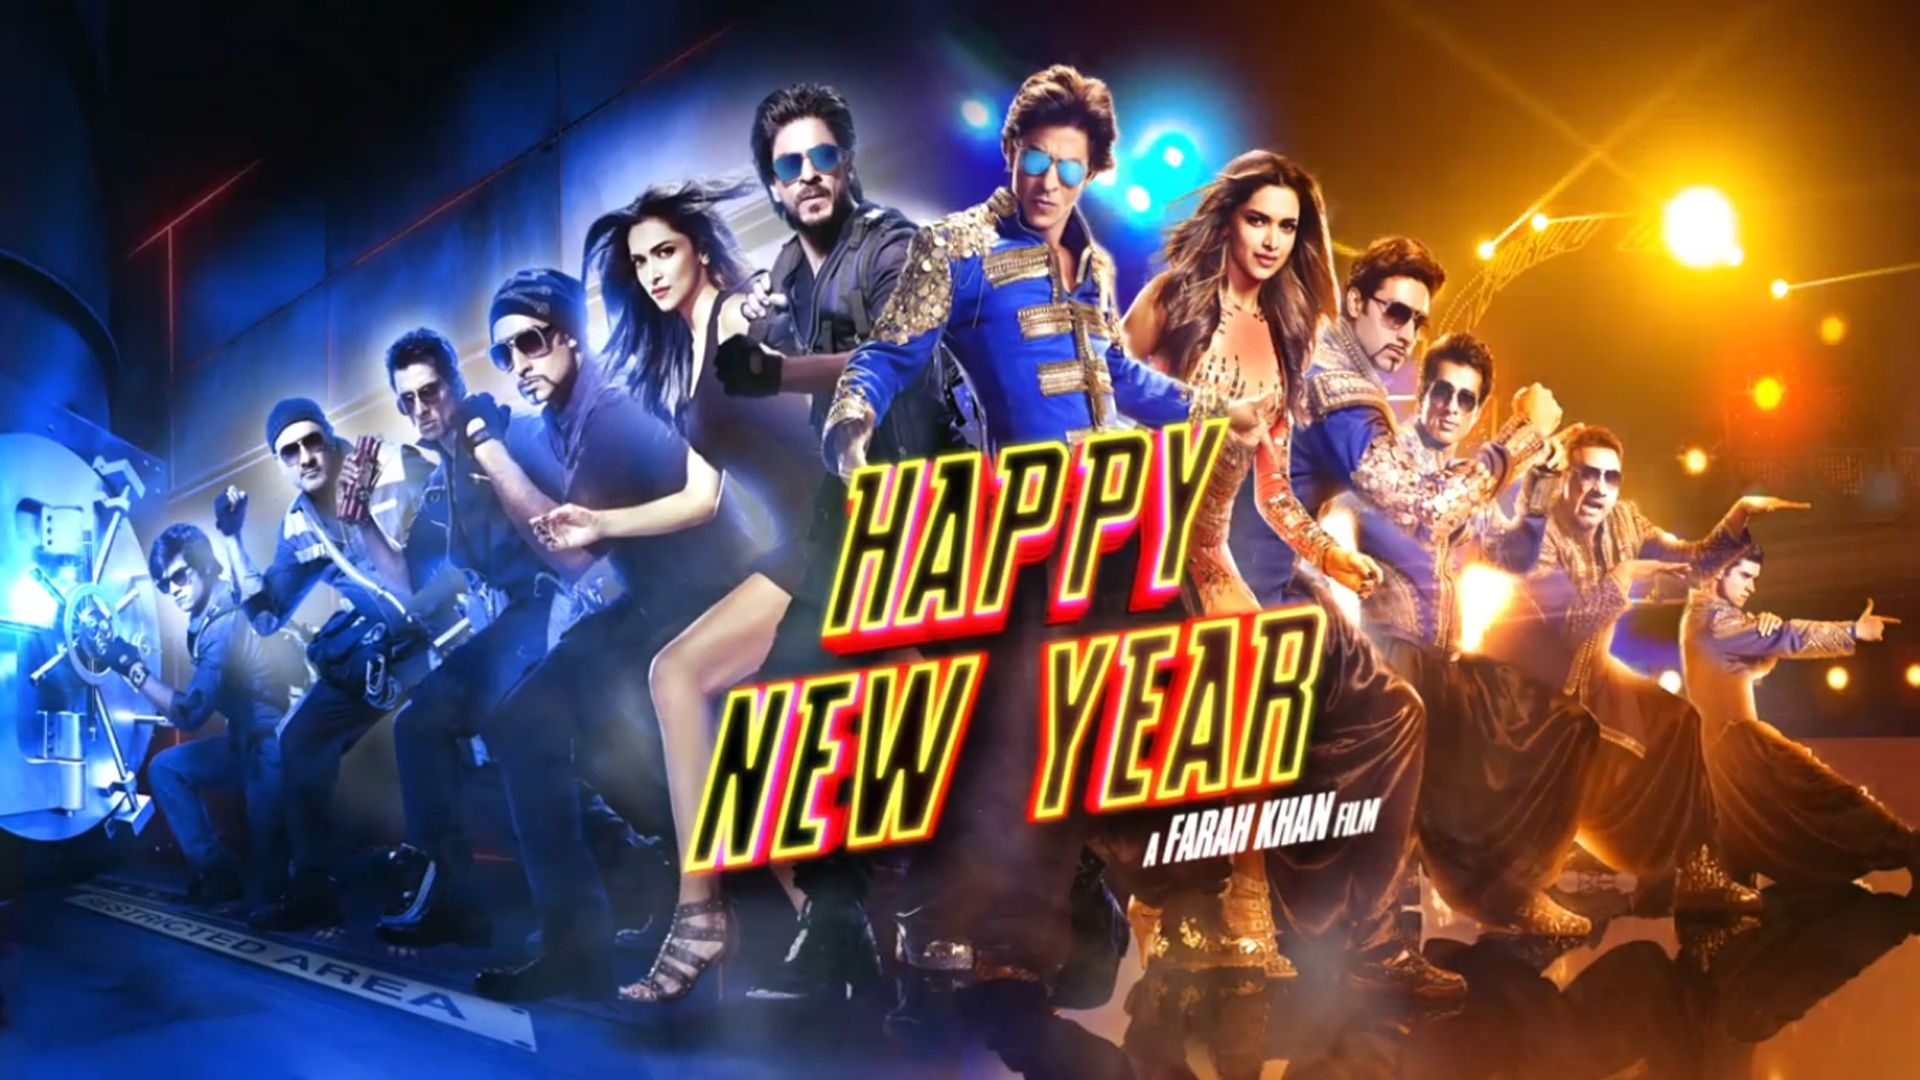 happy new year wallpapers : hd wallpapers available in different